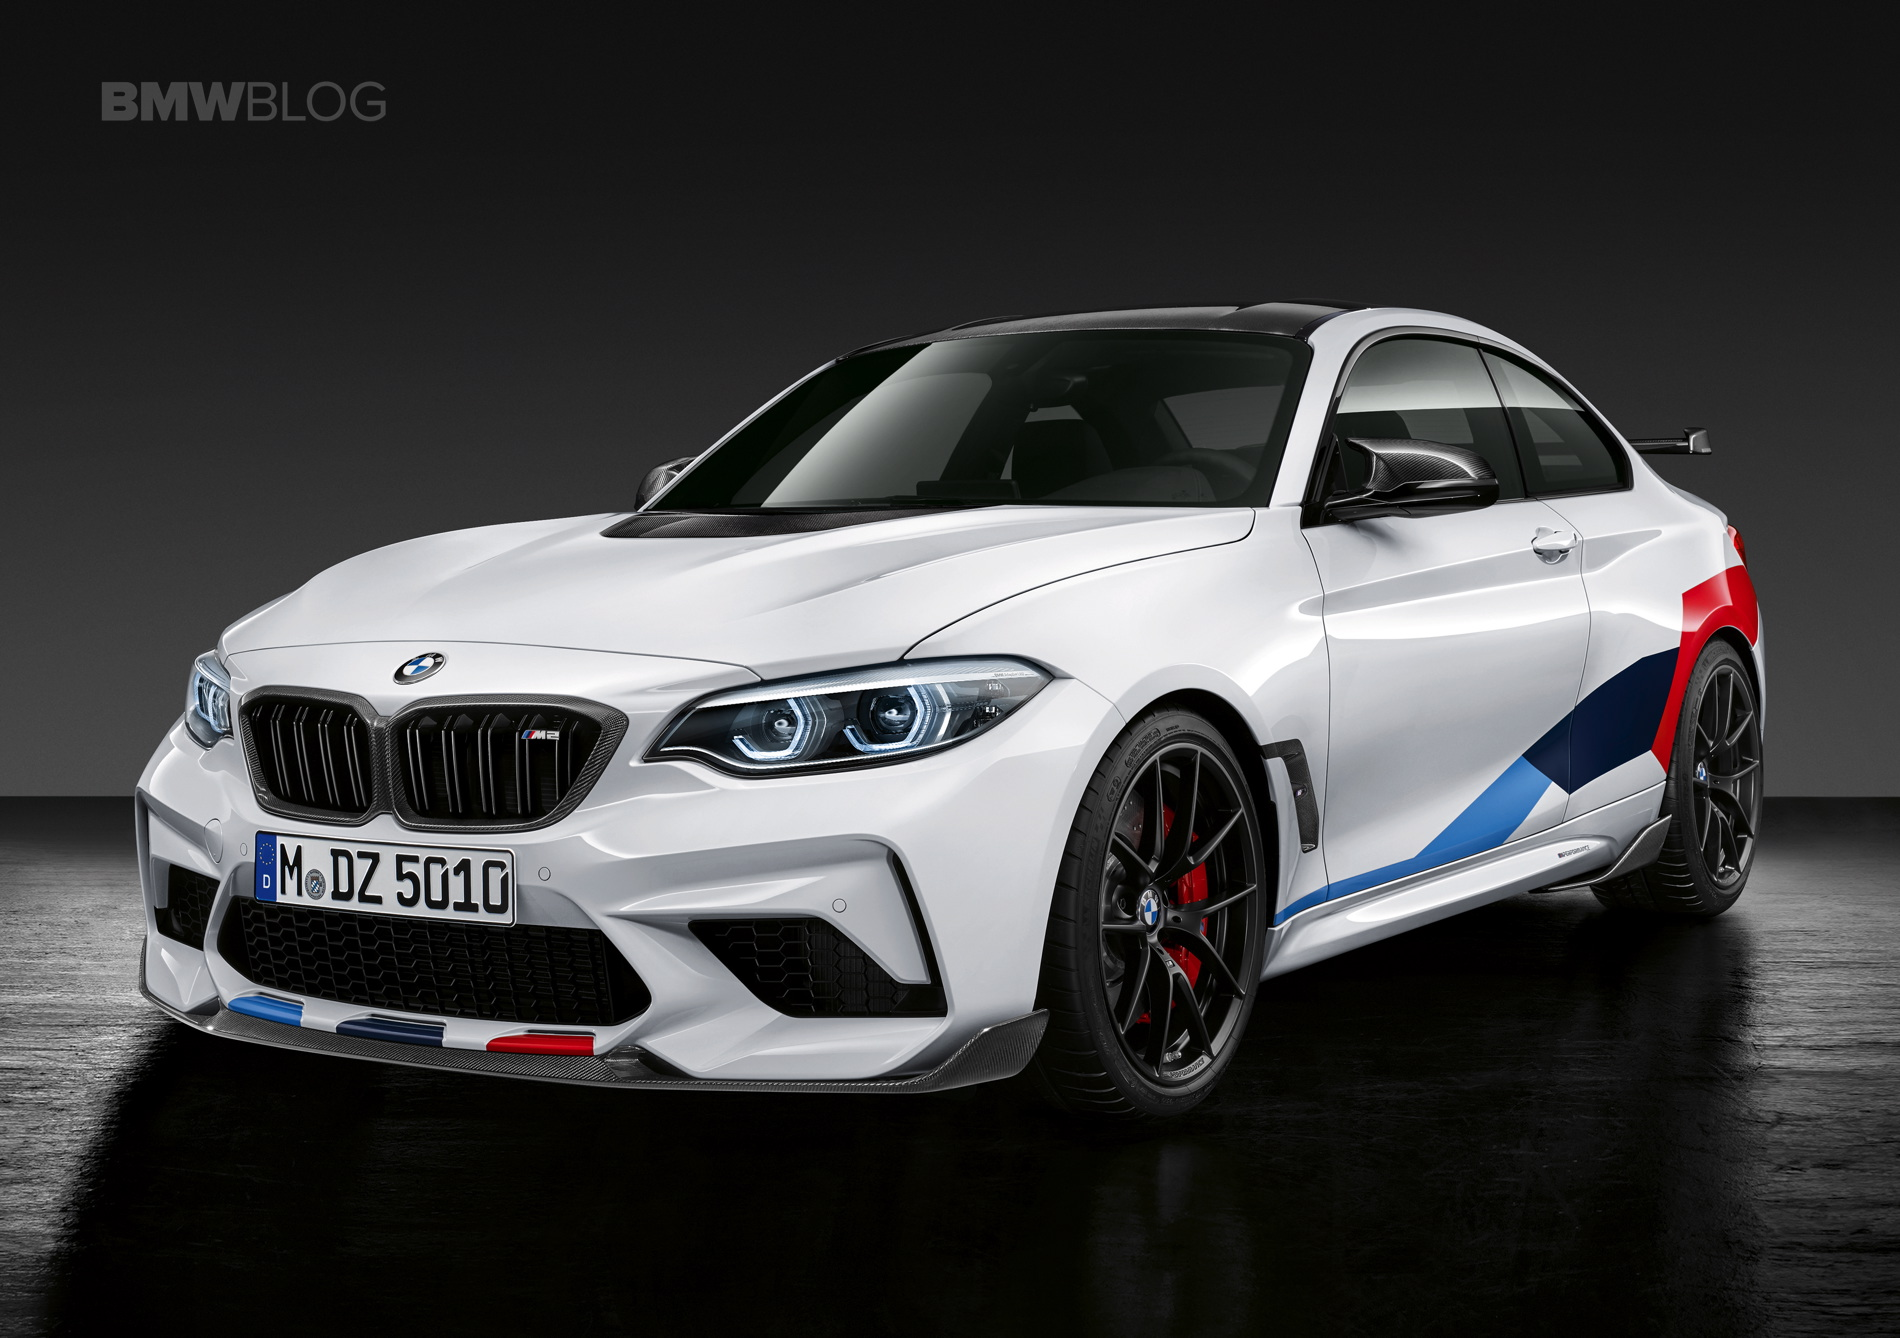 Bmw M2 Competition Gets New M Performance Parts